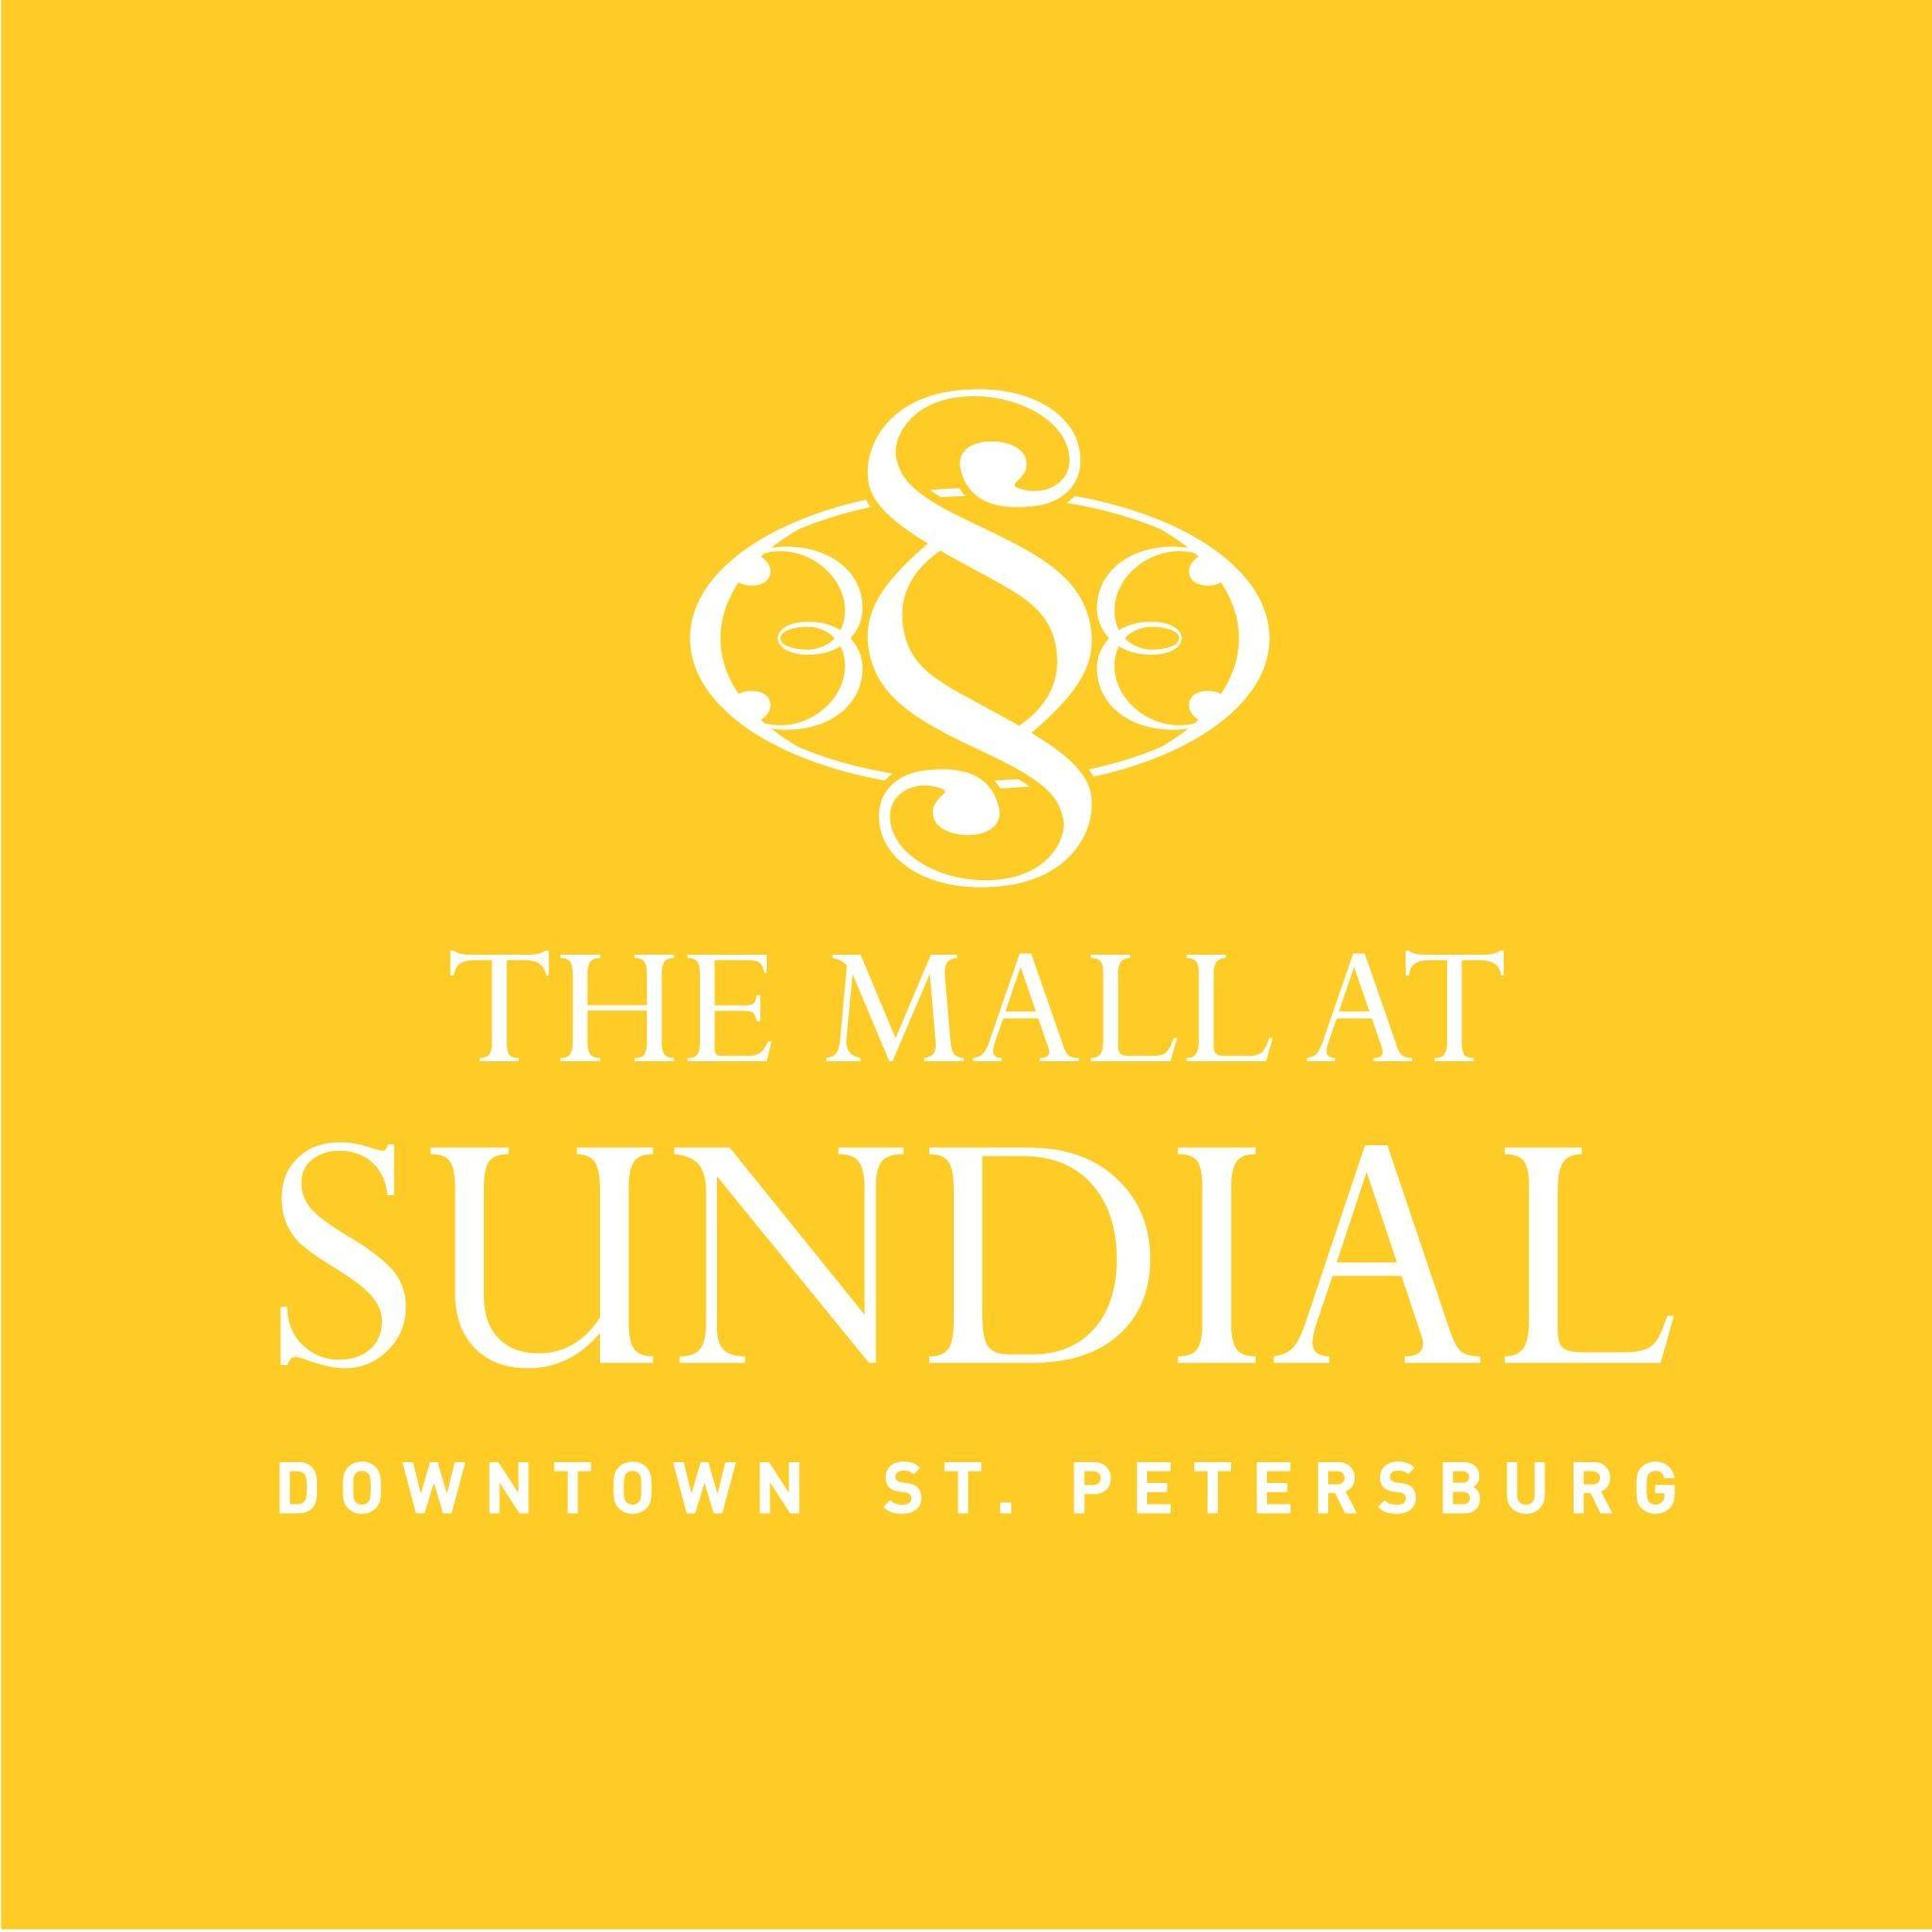 New food hall concept at Sundial coming to St. Petersburg